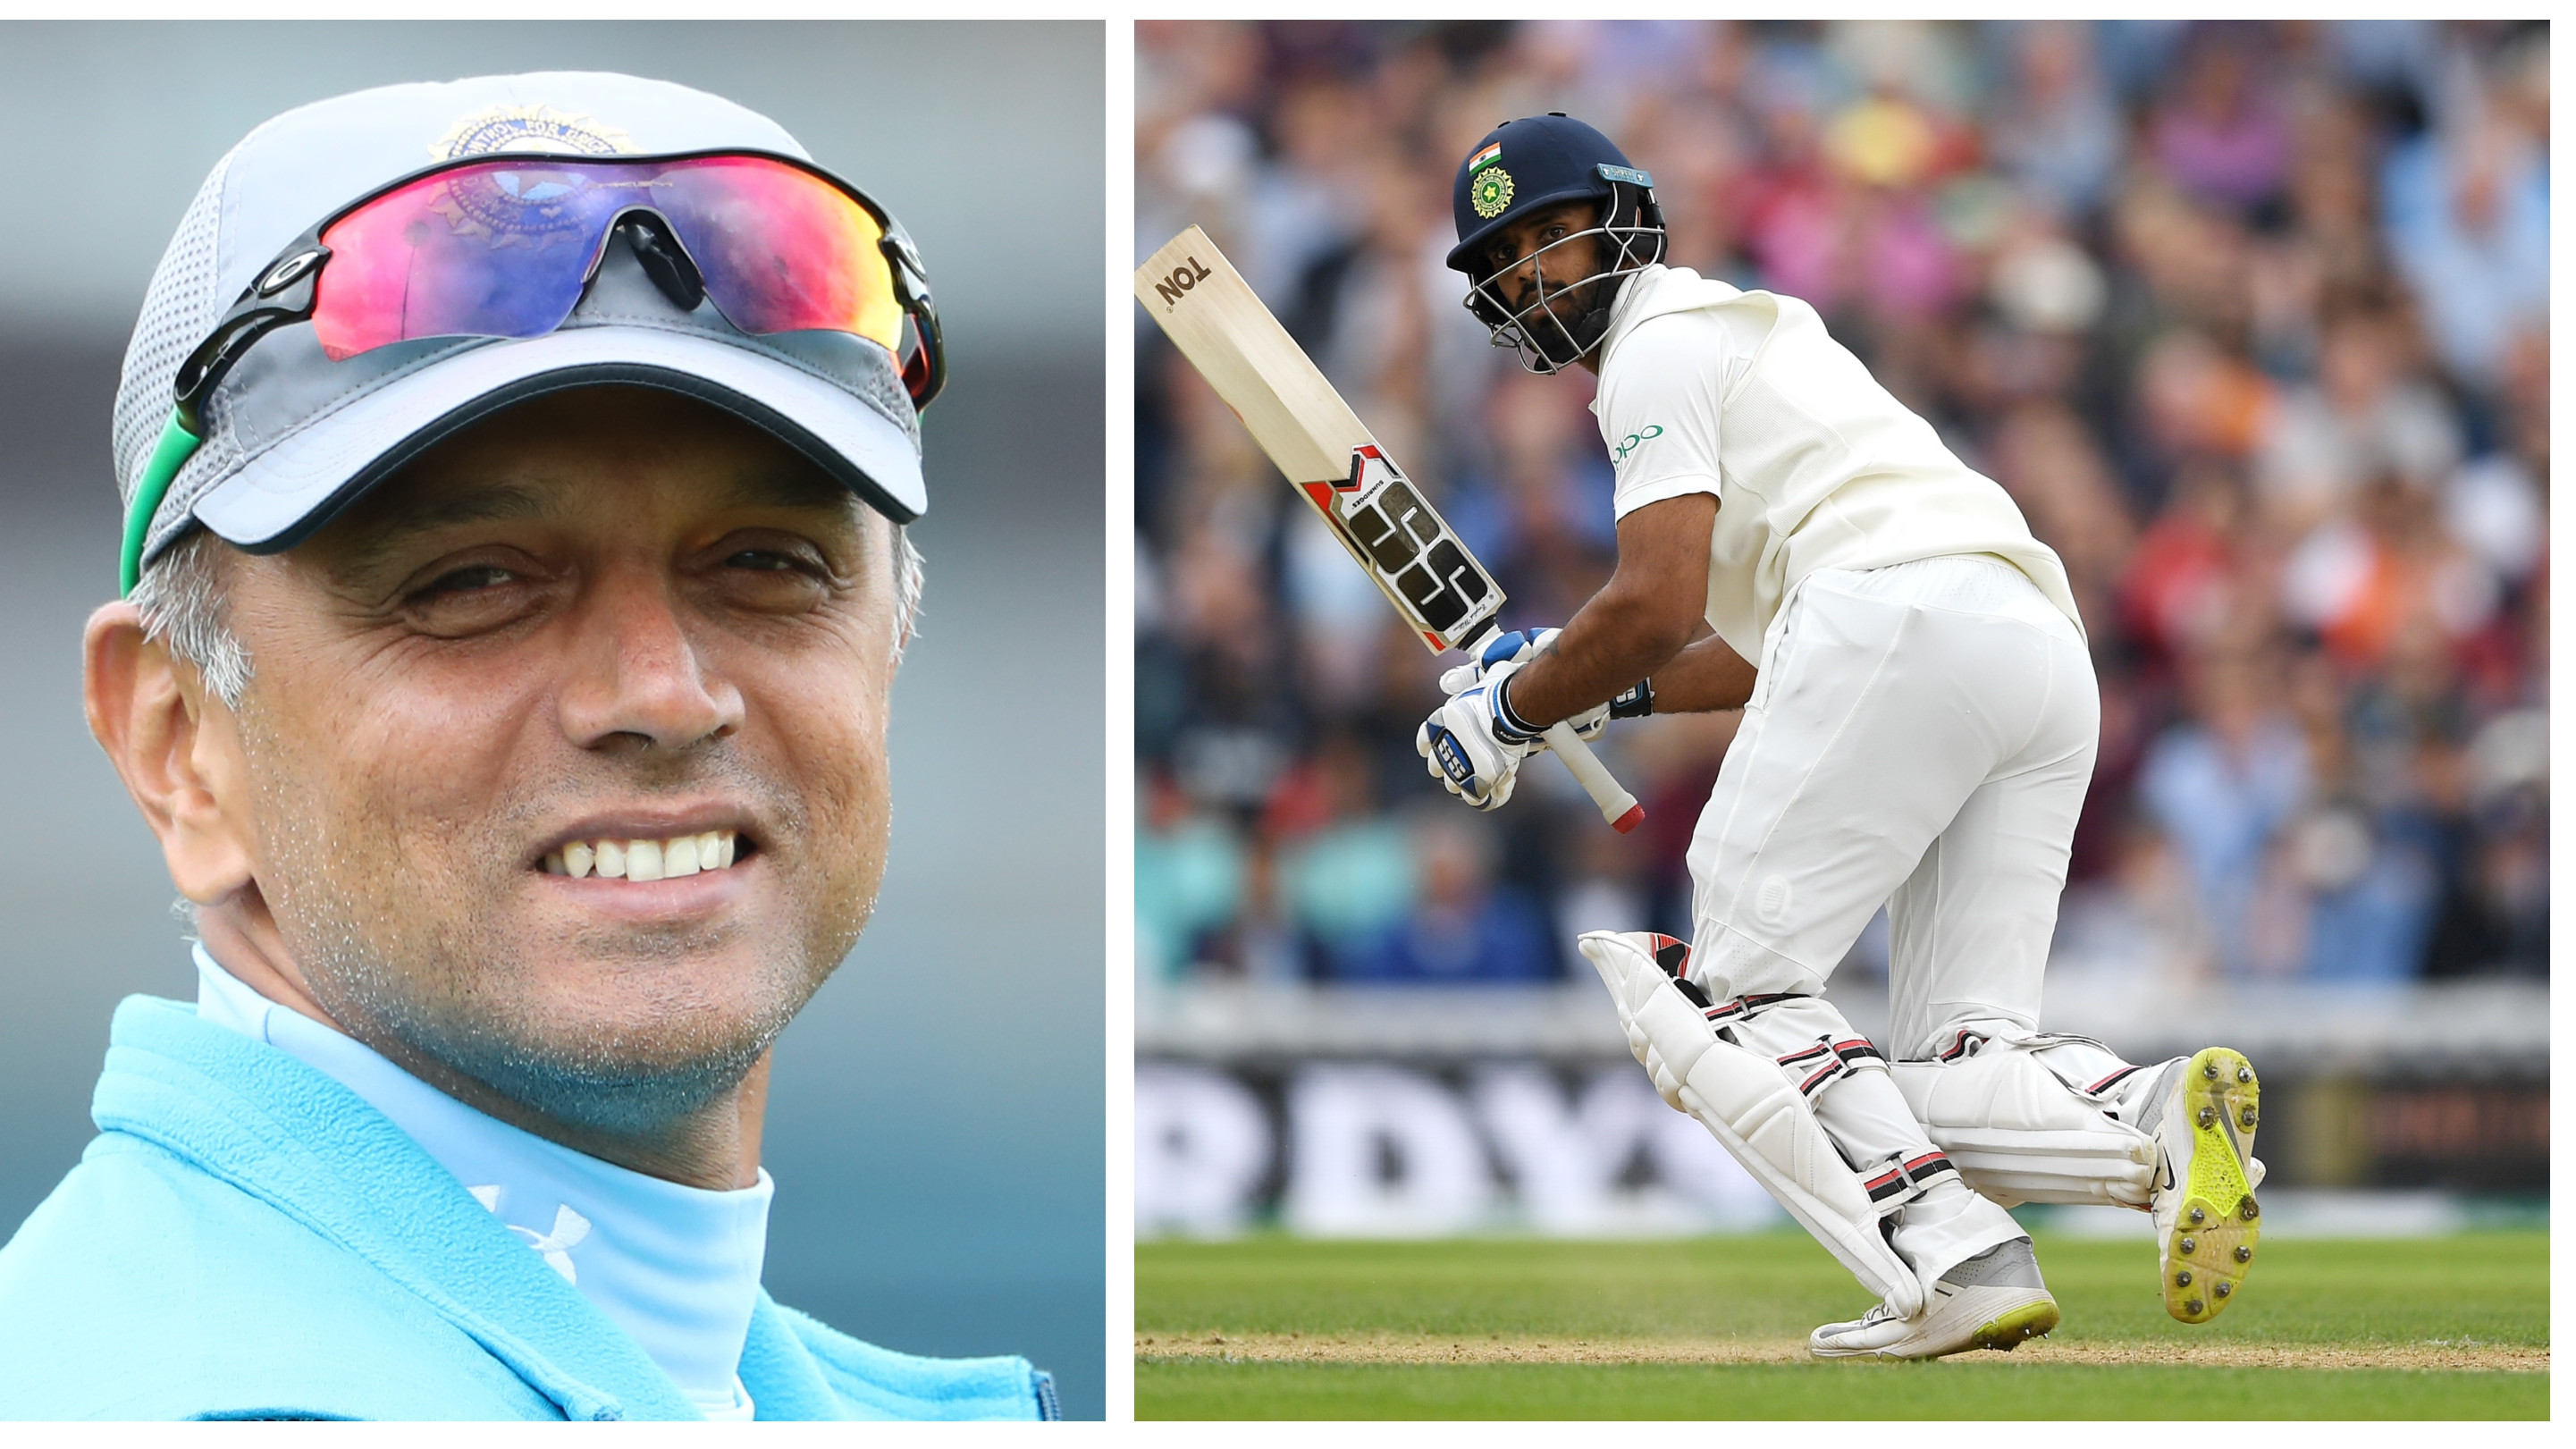 ENG vs IND 2018: Speaking to Rahul Dravid before debut eased up nerves, says Hanuma Vihari